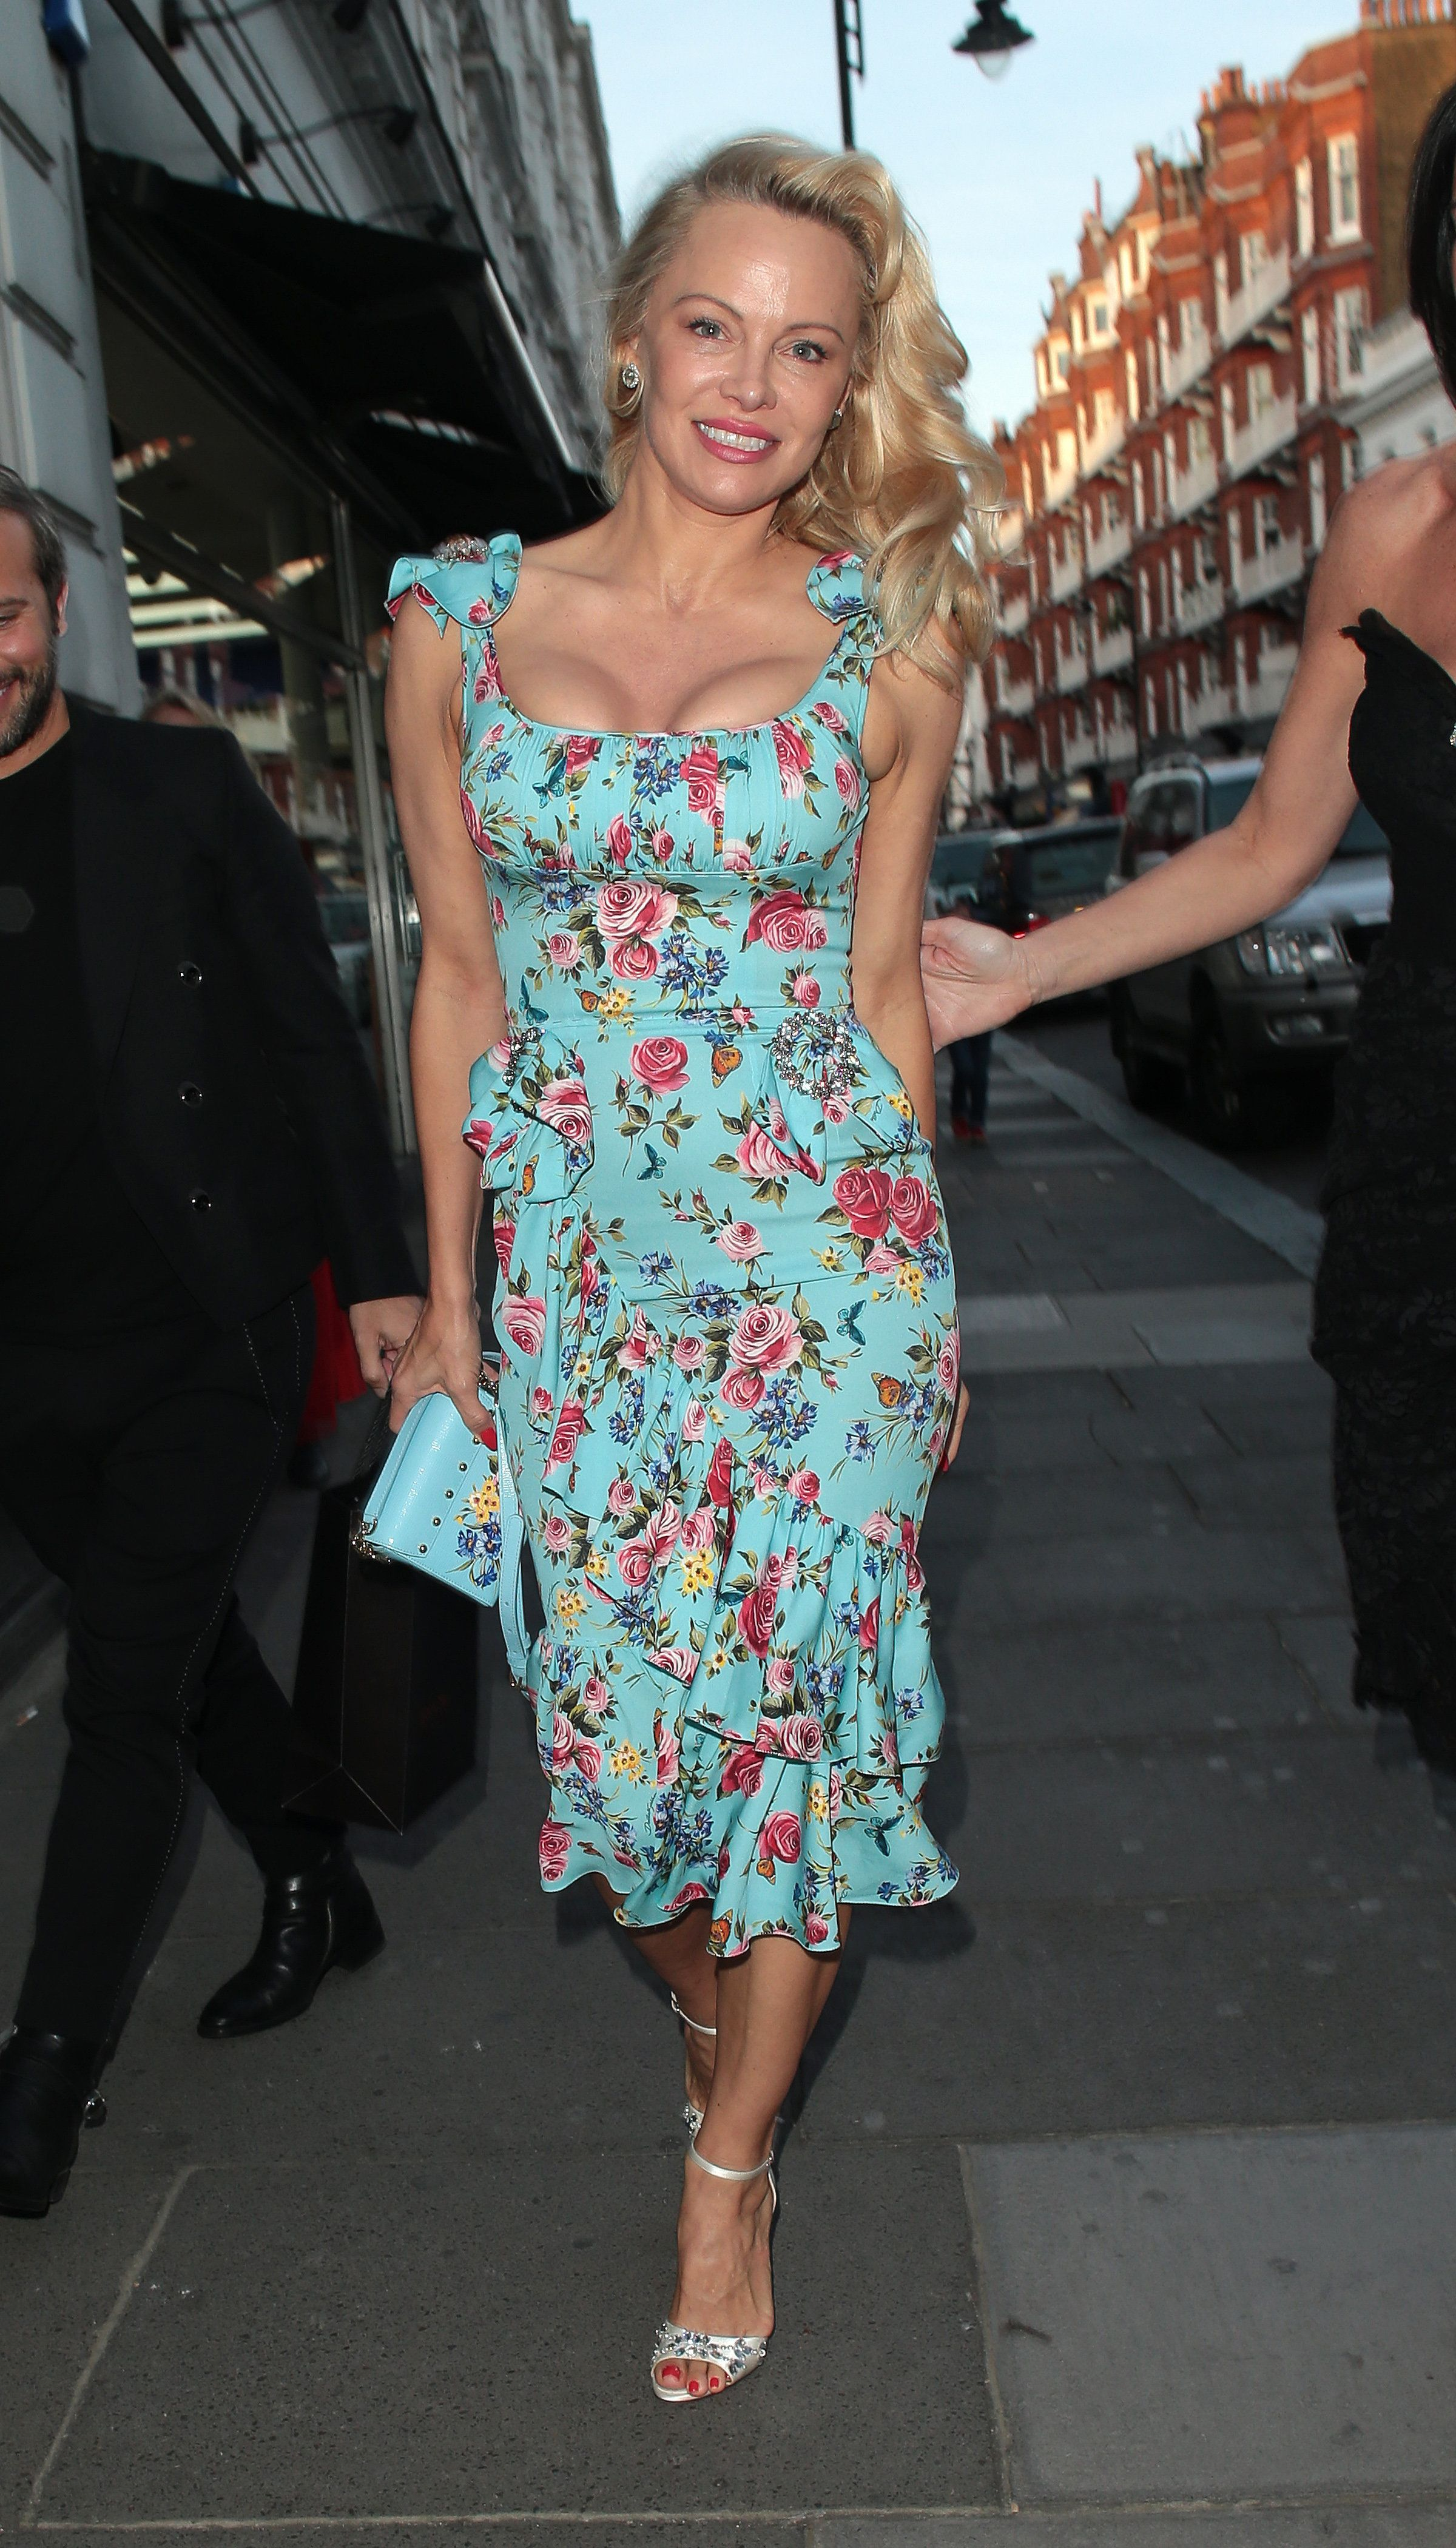 Pamela Anderson attends a party at Albert's on April 3 in London, England.